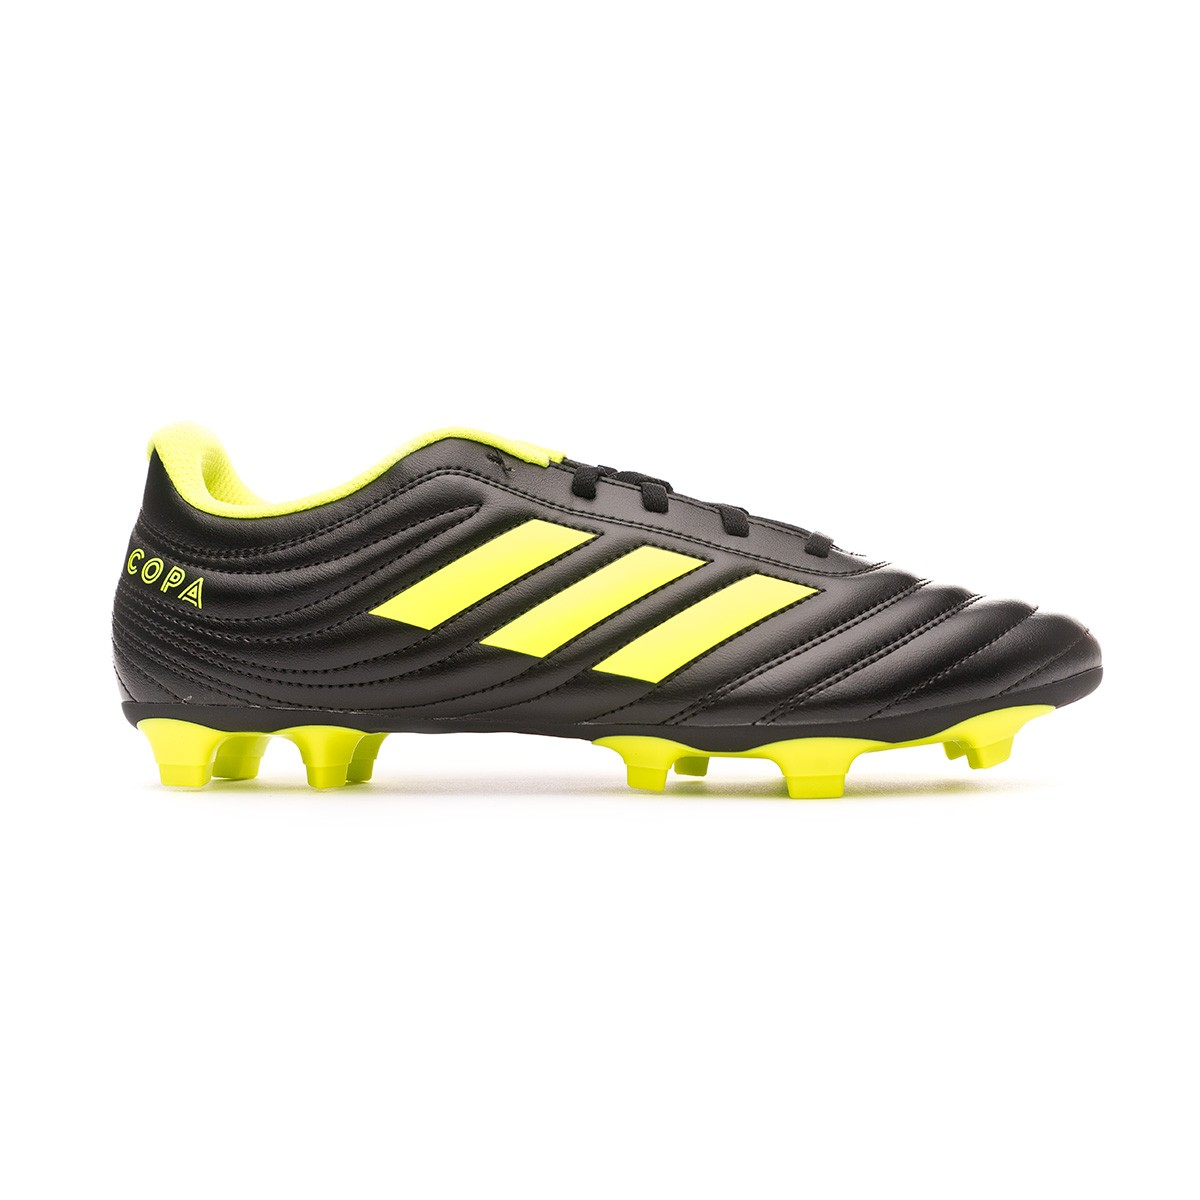 d7c1c82514c Football Boots adidas Copa 19.4 FG Core black-Solar yellow-Core black -  Football store Fútbol Emotion